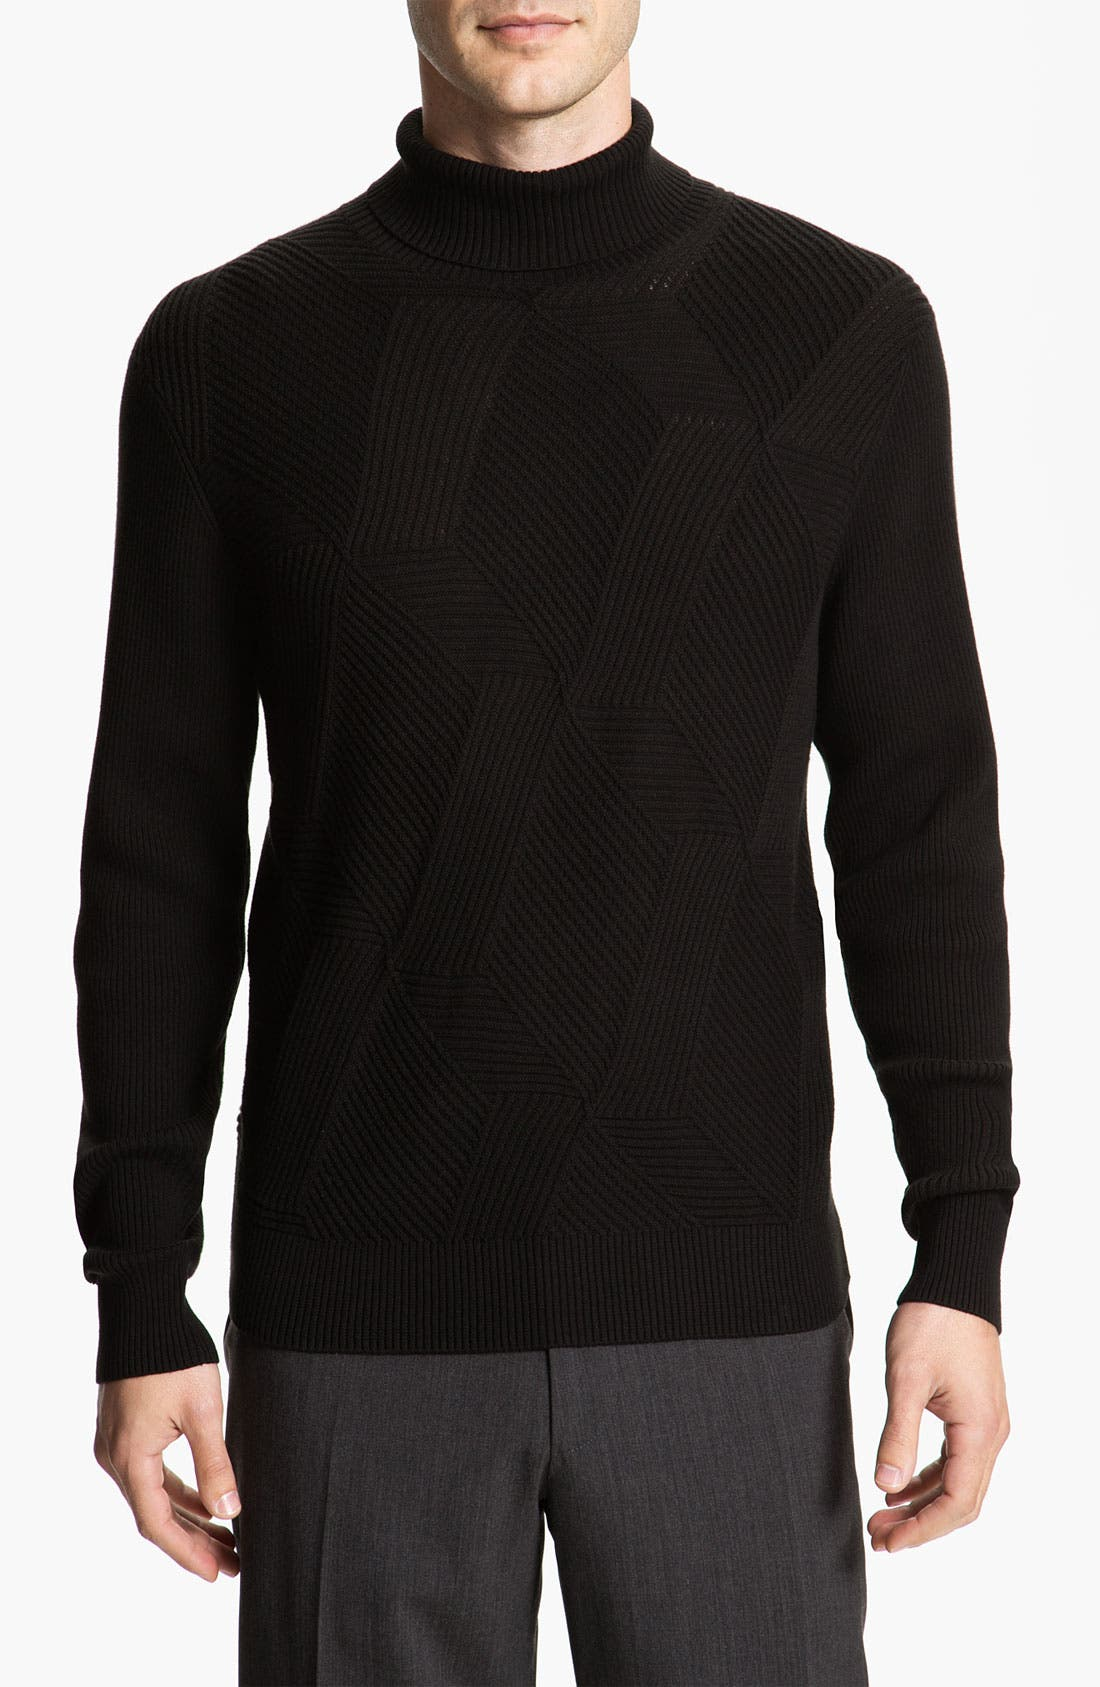 Alternate Image 1 Selected - Calibrate Cross Ribbed Cotton & Cashmere Turtleneck Sweater